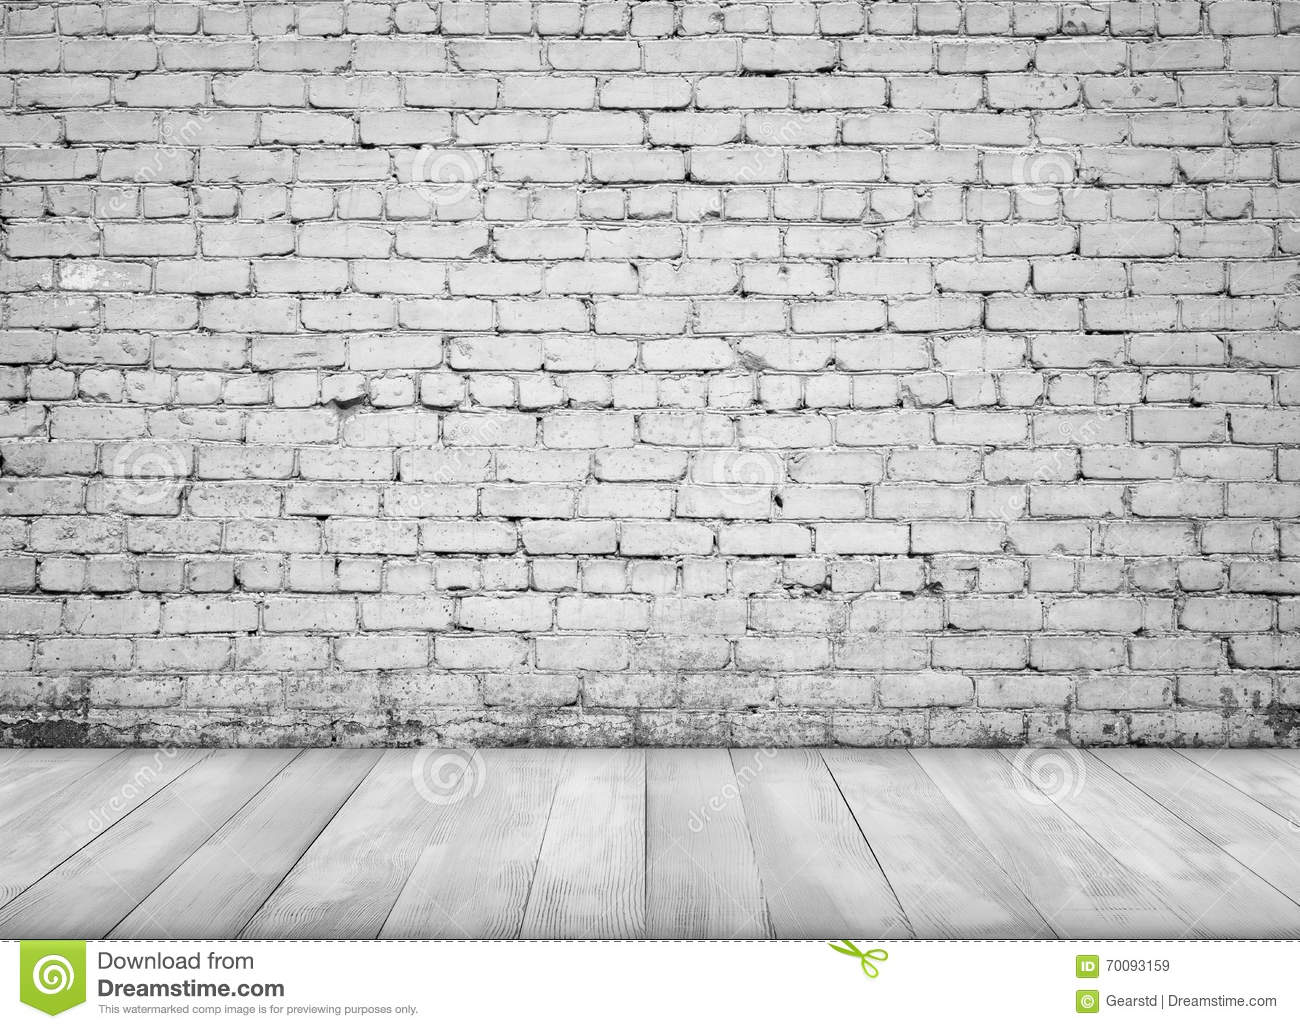 White Brick Wall Of Interior With White Brick Wall And Wooden Floor For